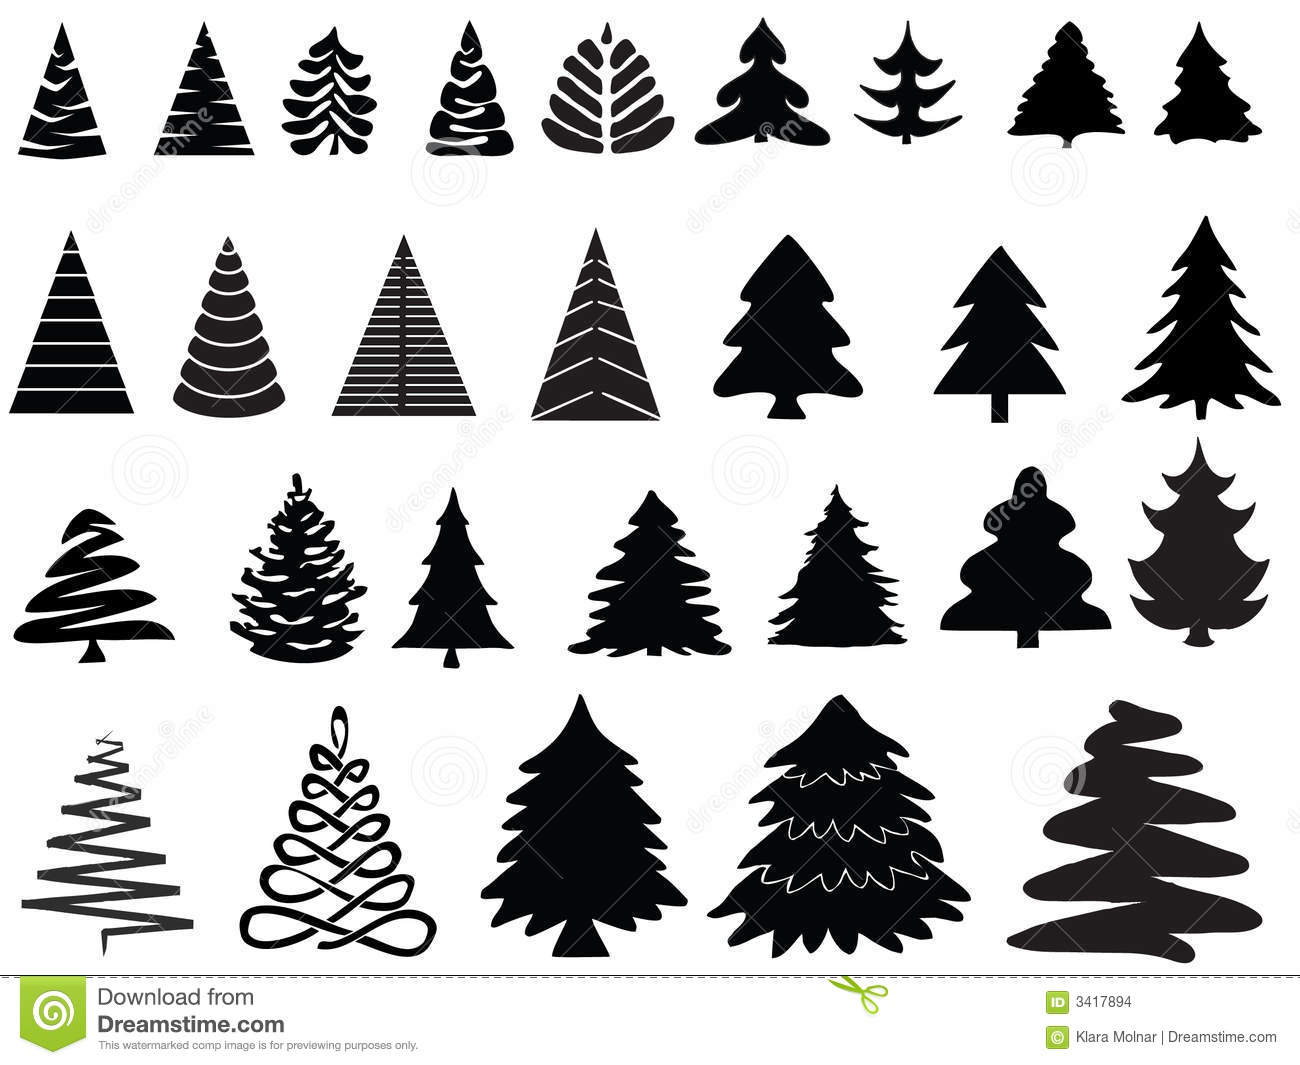 Christmas Tree Vector Image.Vector Christmas Trees Stock Vector Illustration Of Needle